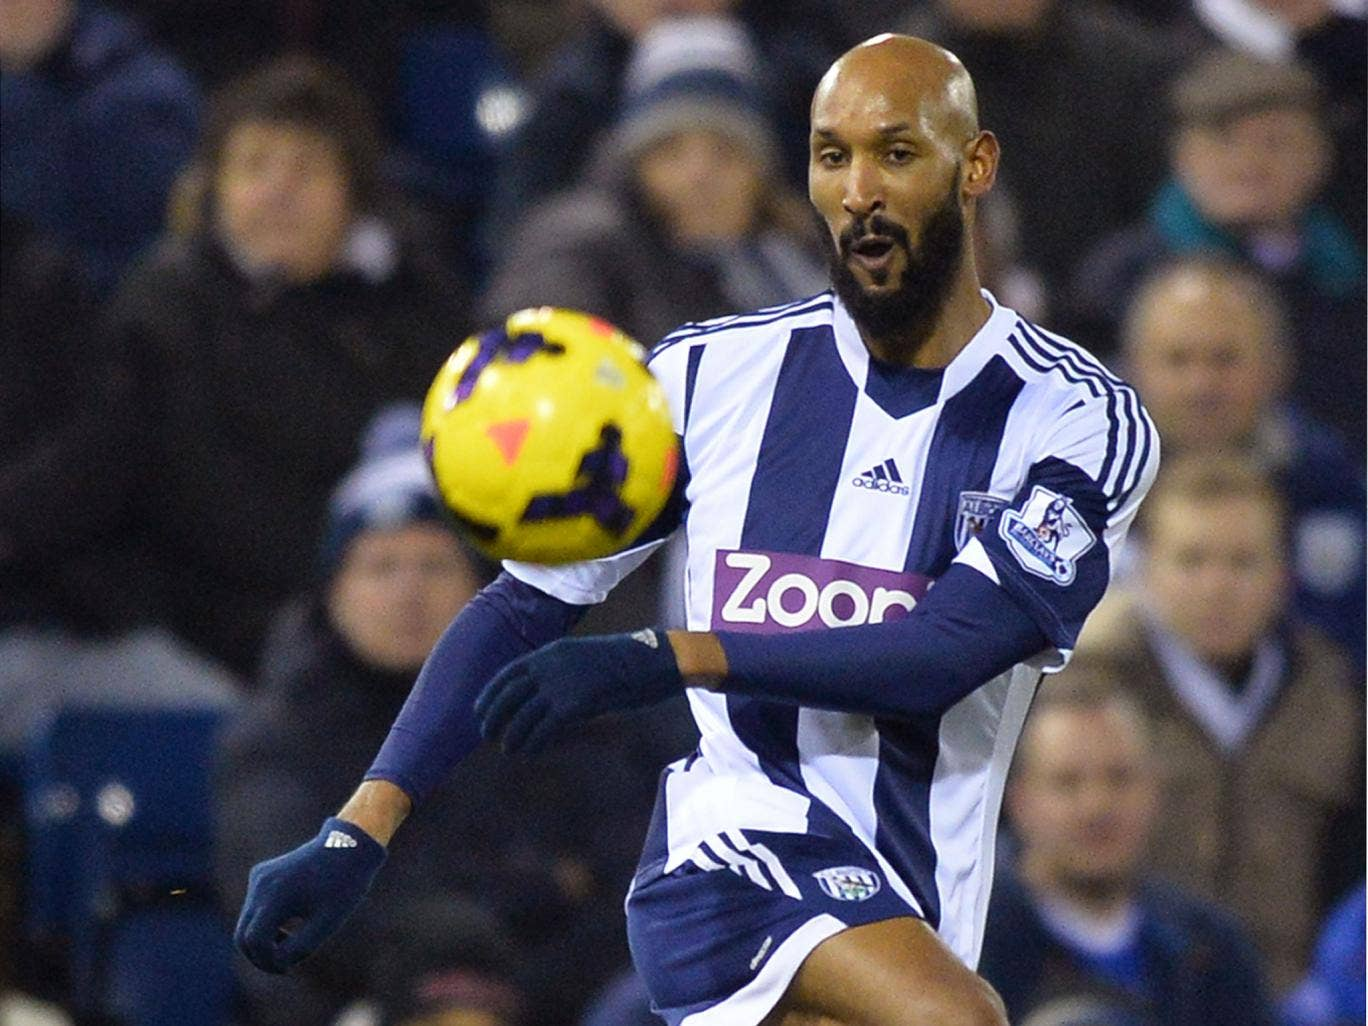 Nicolas Anelka in action for West Brom during the 1-1 draw with Everton